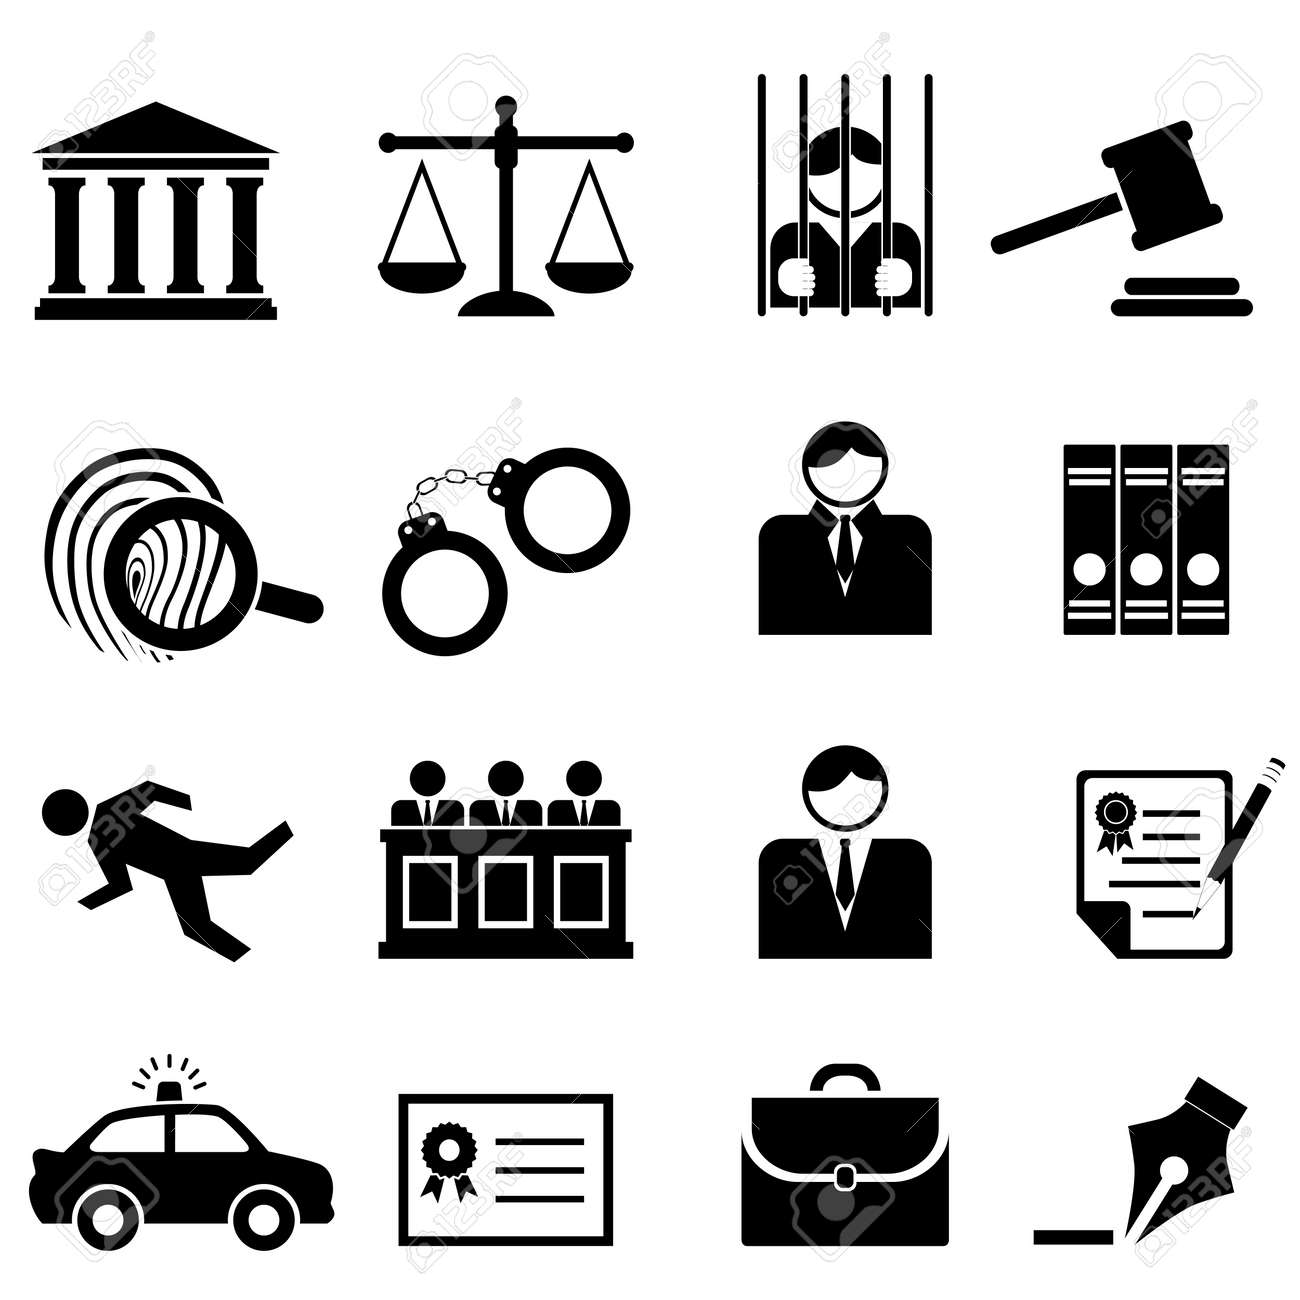 Legal, law and justice icon set - 15925487